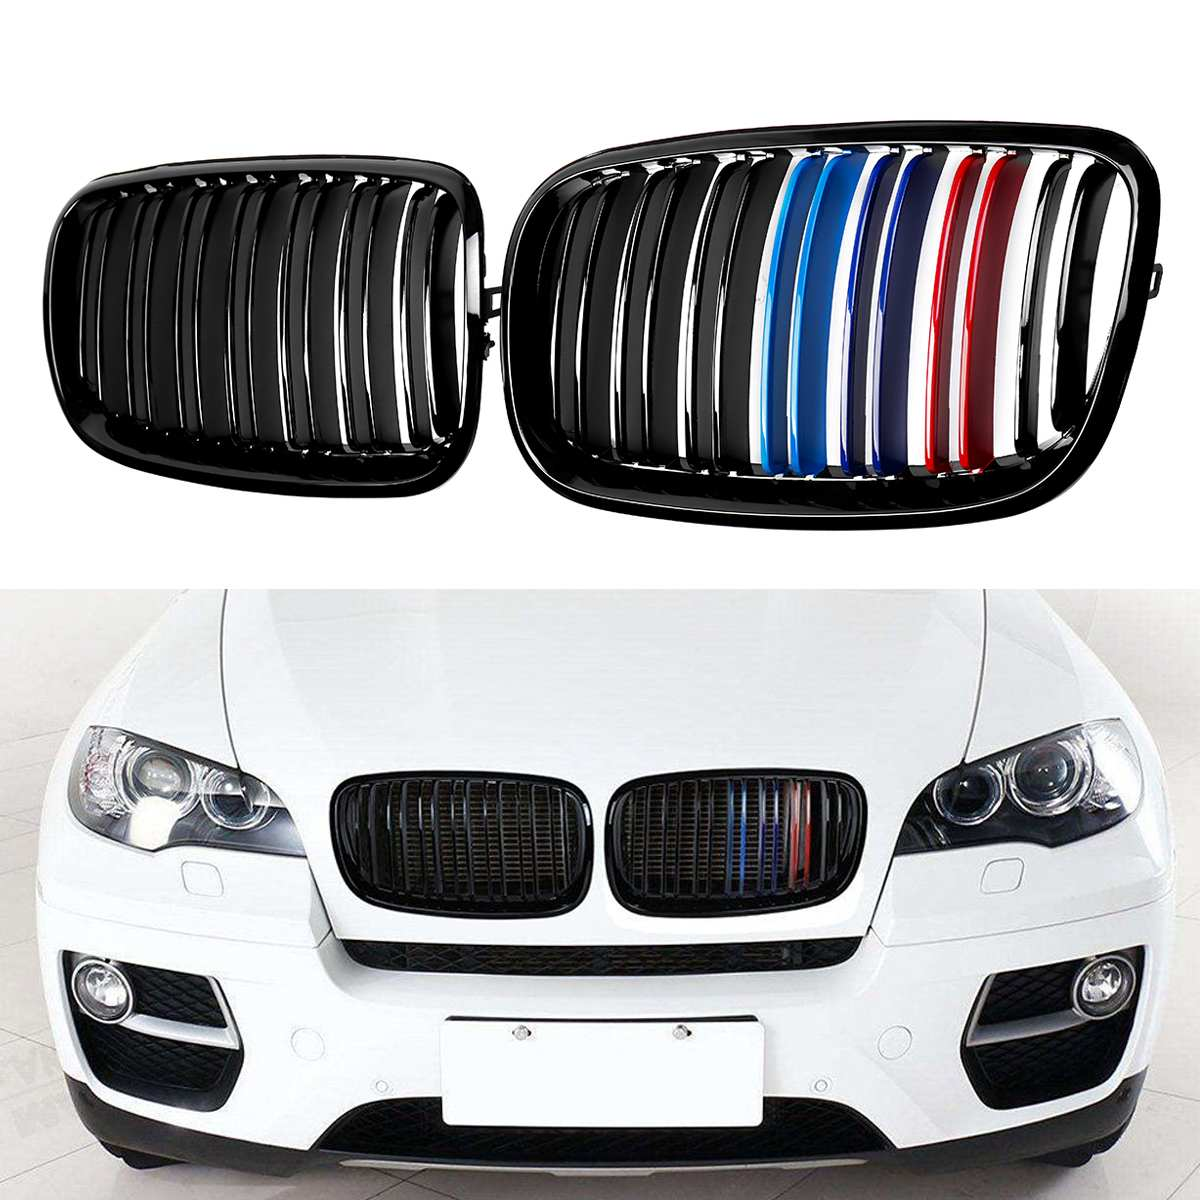 High Quality M Color A Pair Car Front Bumper Grille Grill Cover Trim Kidney For BMW X5 X6 E70 E71 2007 2013 Car Racing Grills